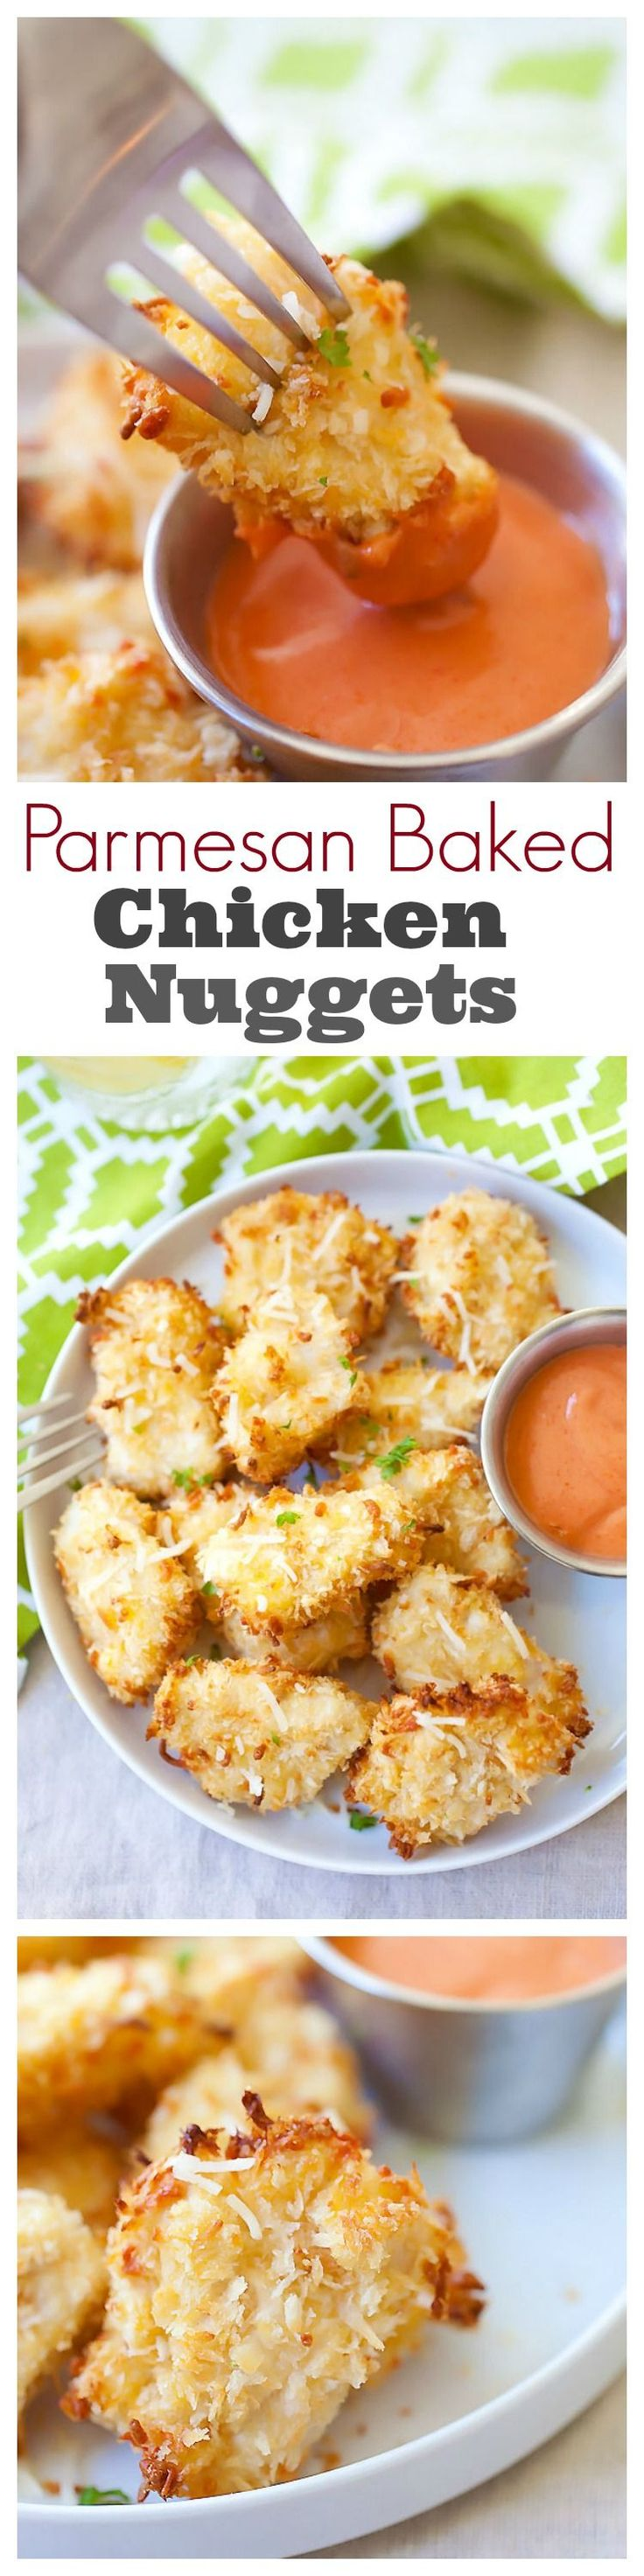 Parmesan Baked Chicken Nuggets – crispy chicken nuggets with real chicken with no frying. Easy and yummy! (Summer Bake Ovens)